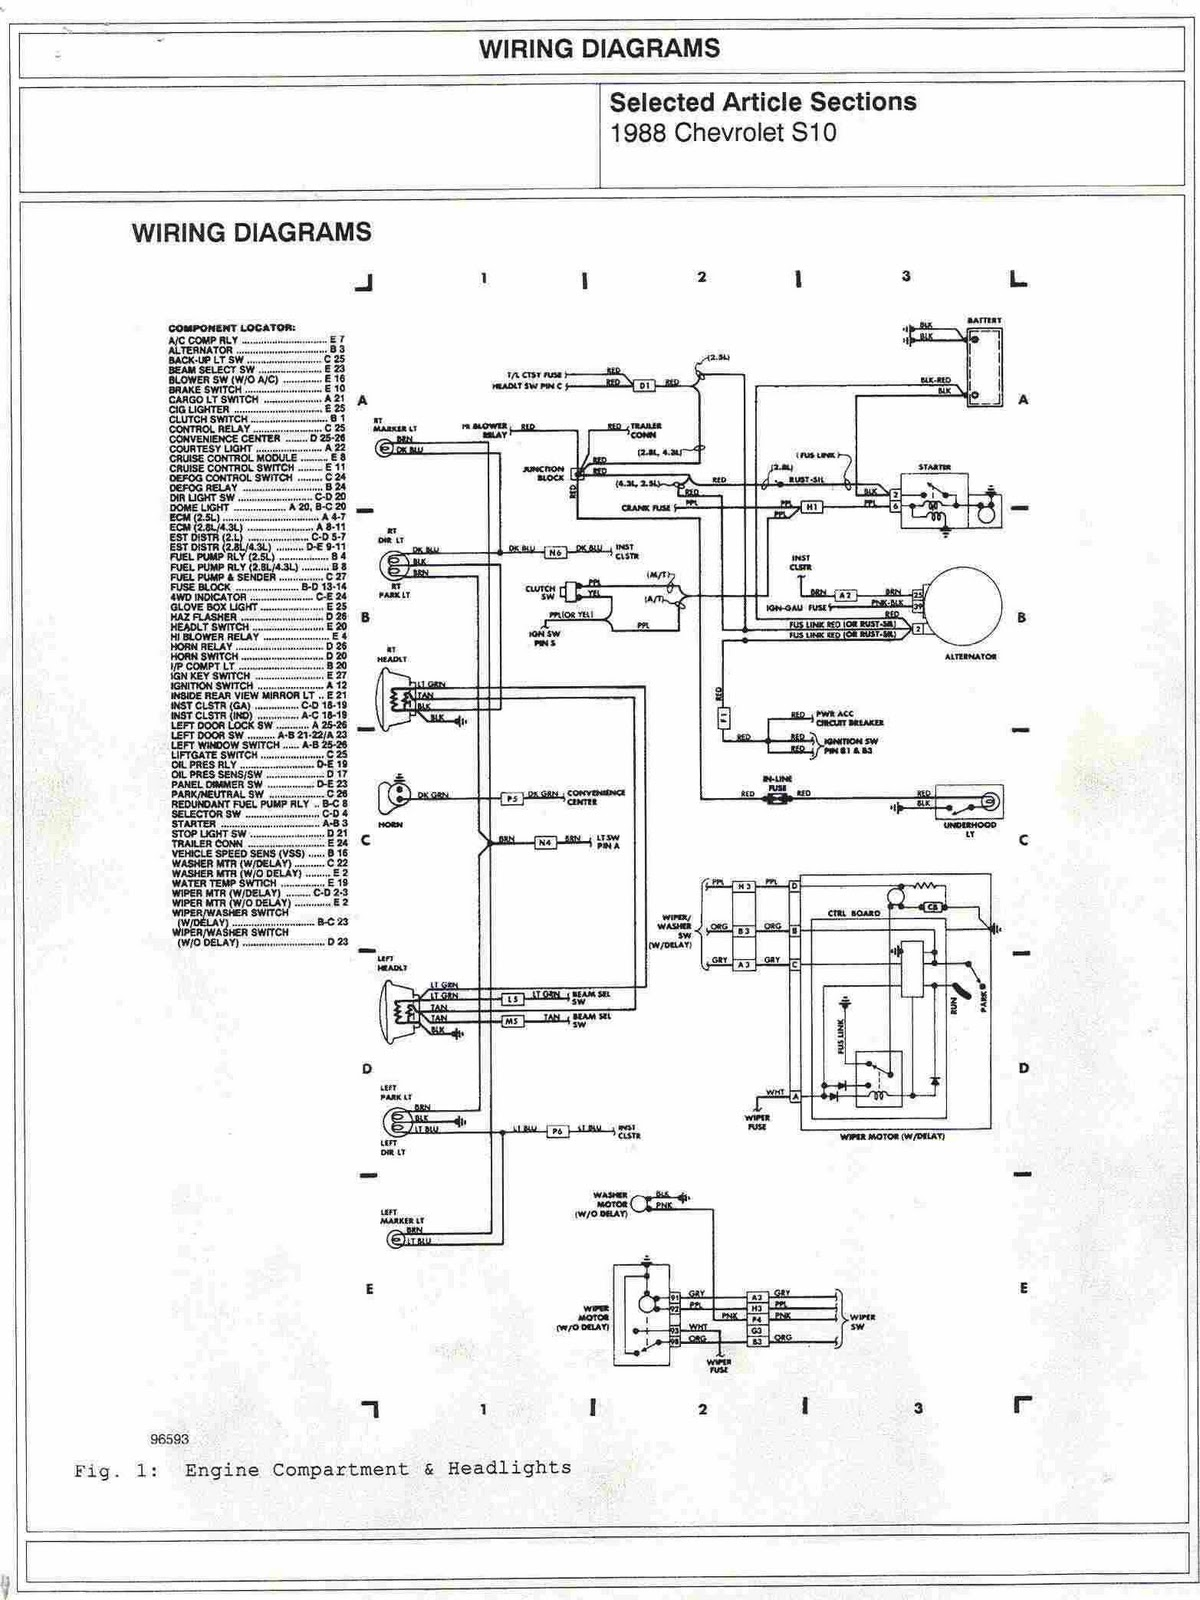 1988+Chevrolet+S10+Engine+Compartment+and+Headlights+Wiring+Diagrams 95 s10 wiring diagram 95 tahoe wiring diagram \u2022 wiring diagrams S10 Wiring Diagram for Gauges at edmiracle.co